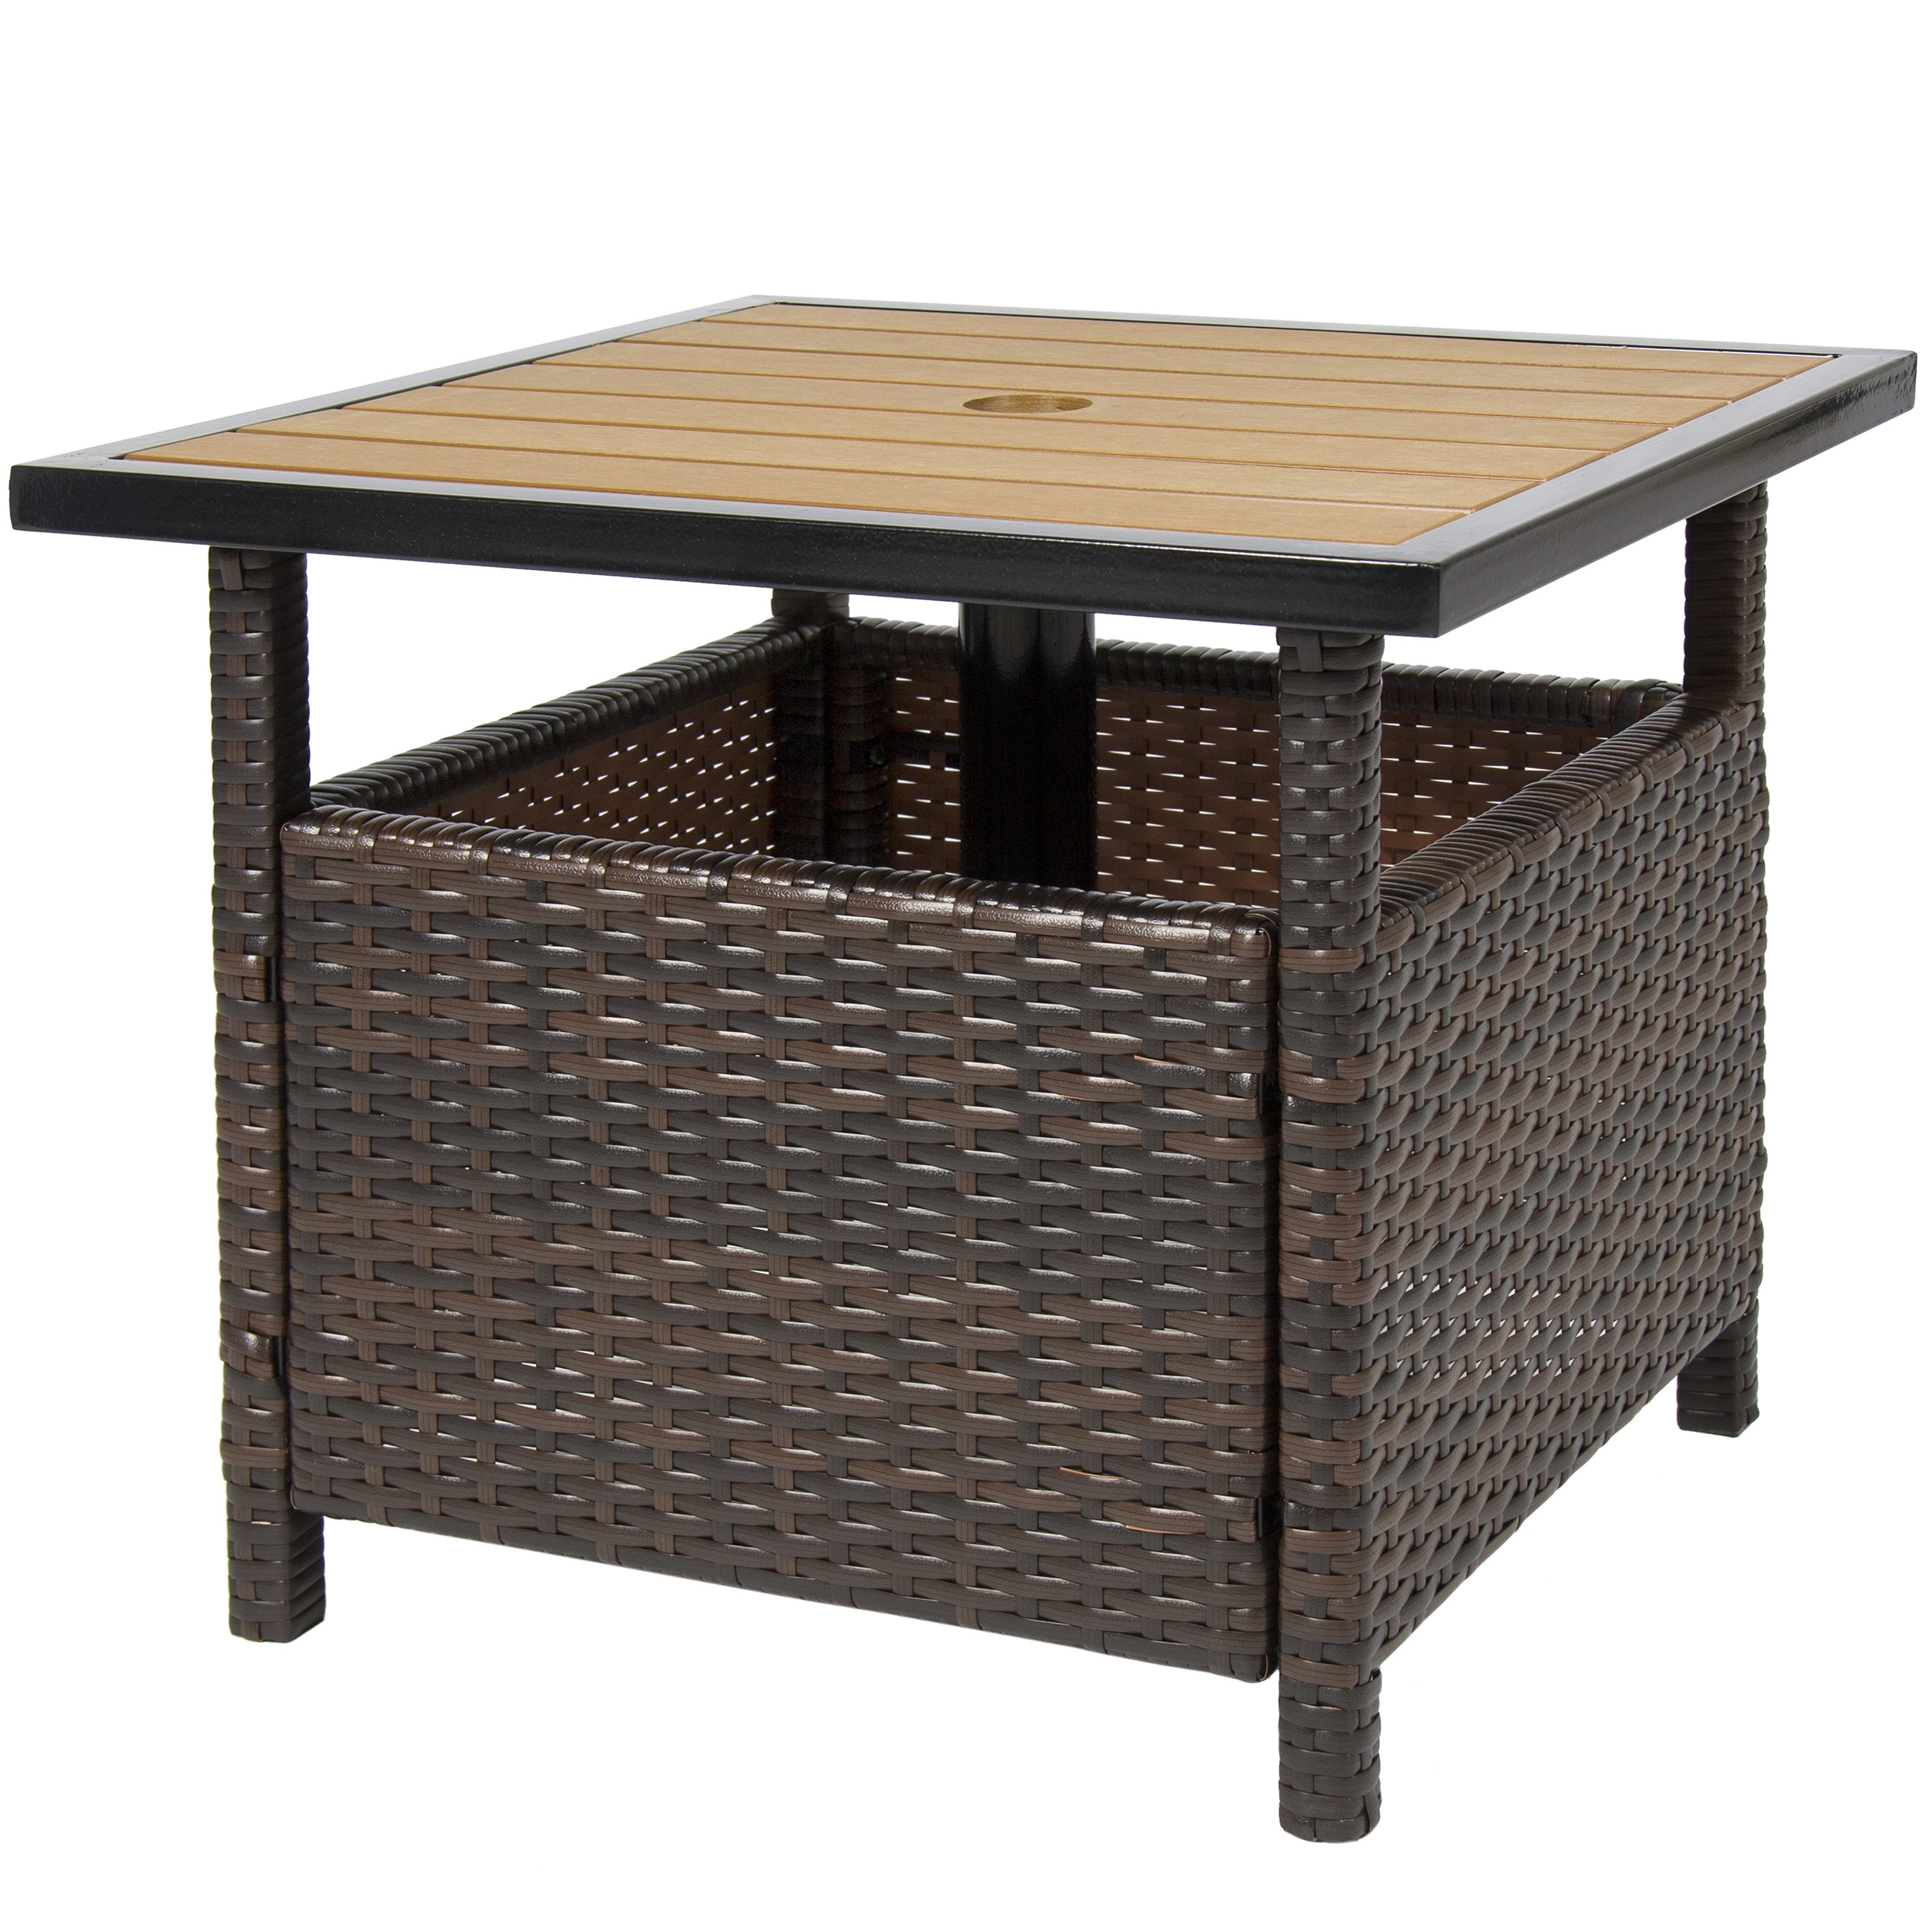 Most Current Best Choice Products Outdoor Furniture Wicker Rattan Patio Umbrella Intended For Patio Umbrella Stands With Wheels (View 9 of 20)